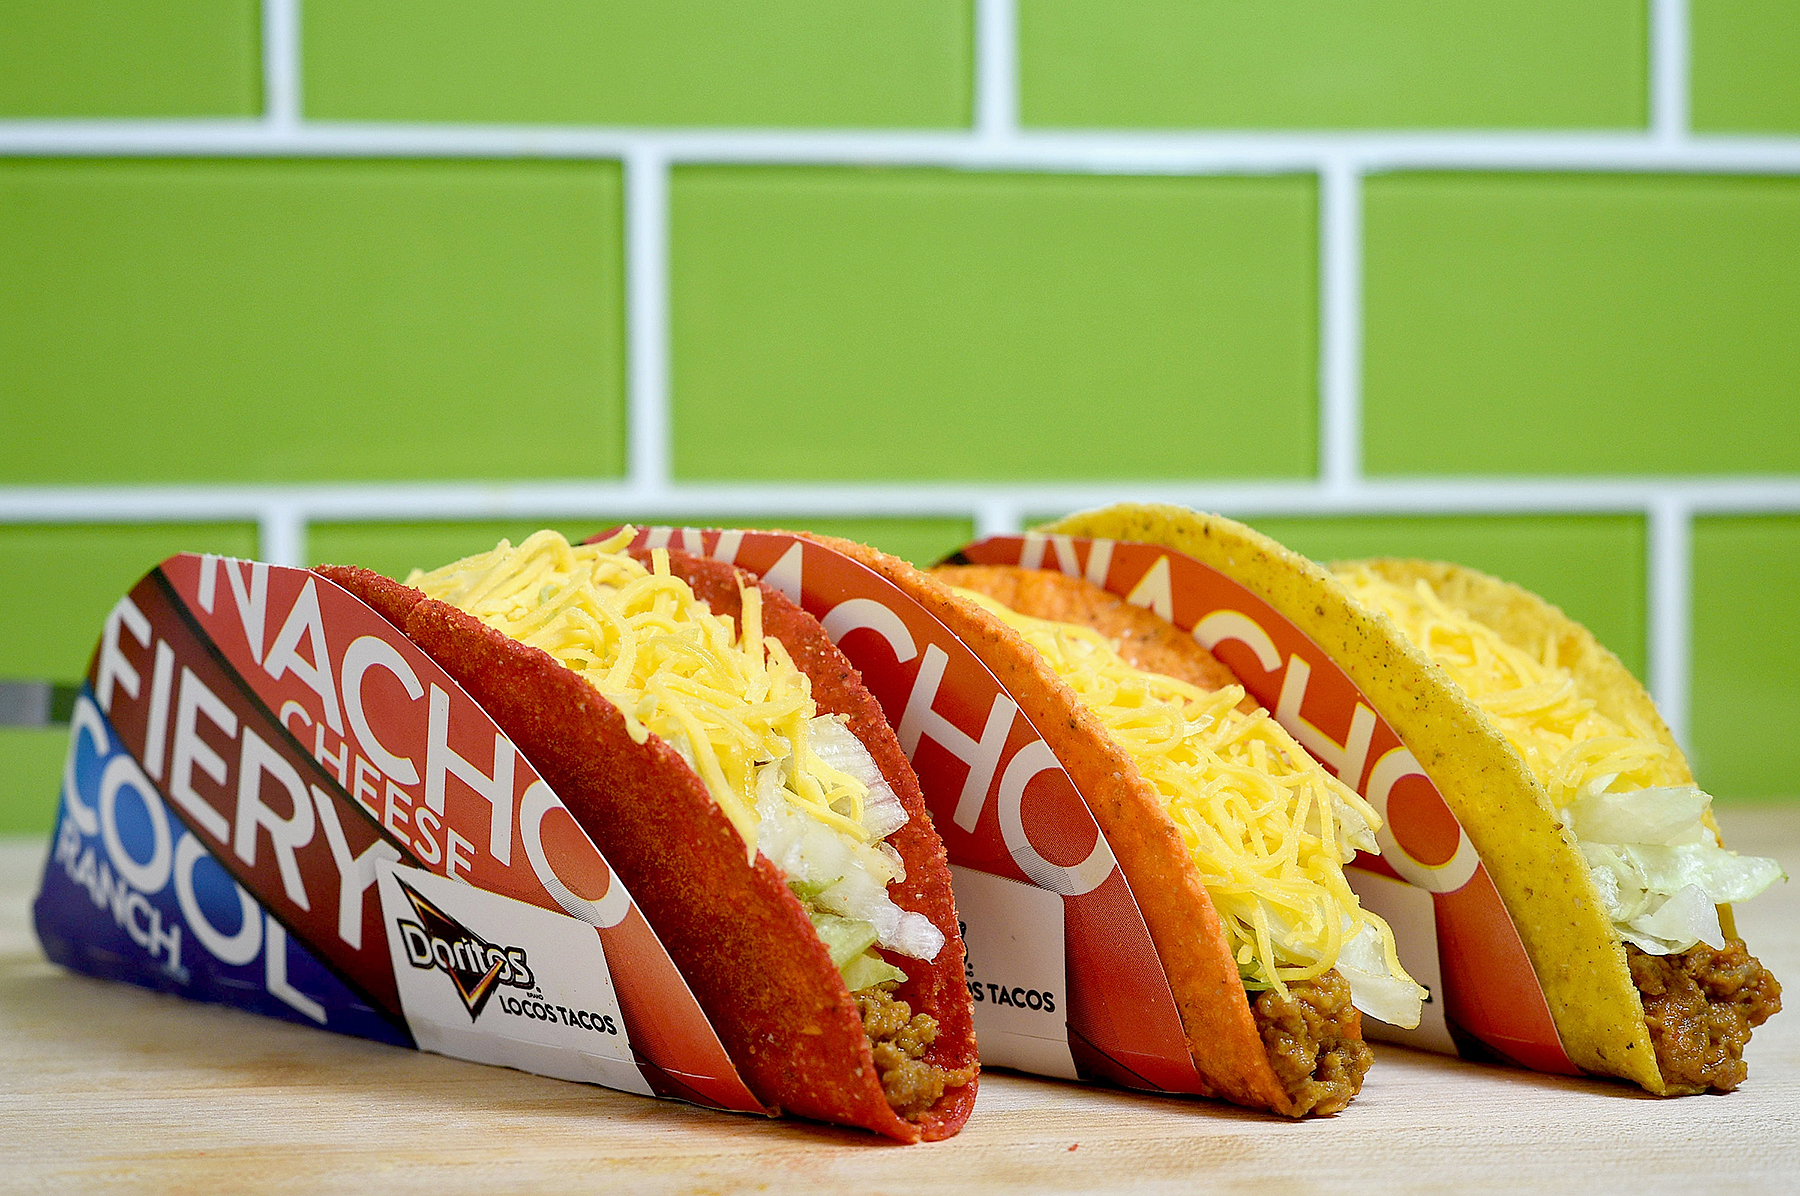 Today Only: Free tacos at Taco Bell